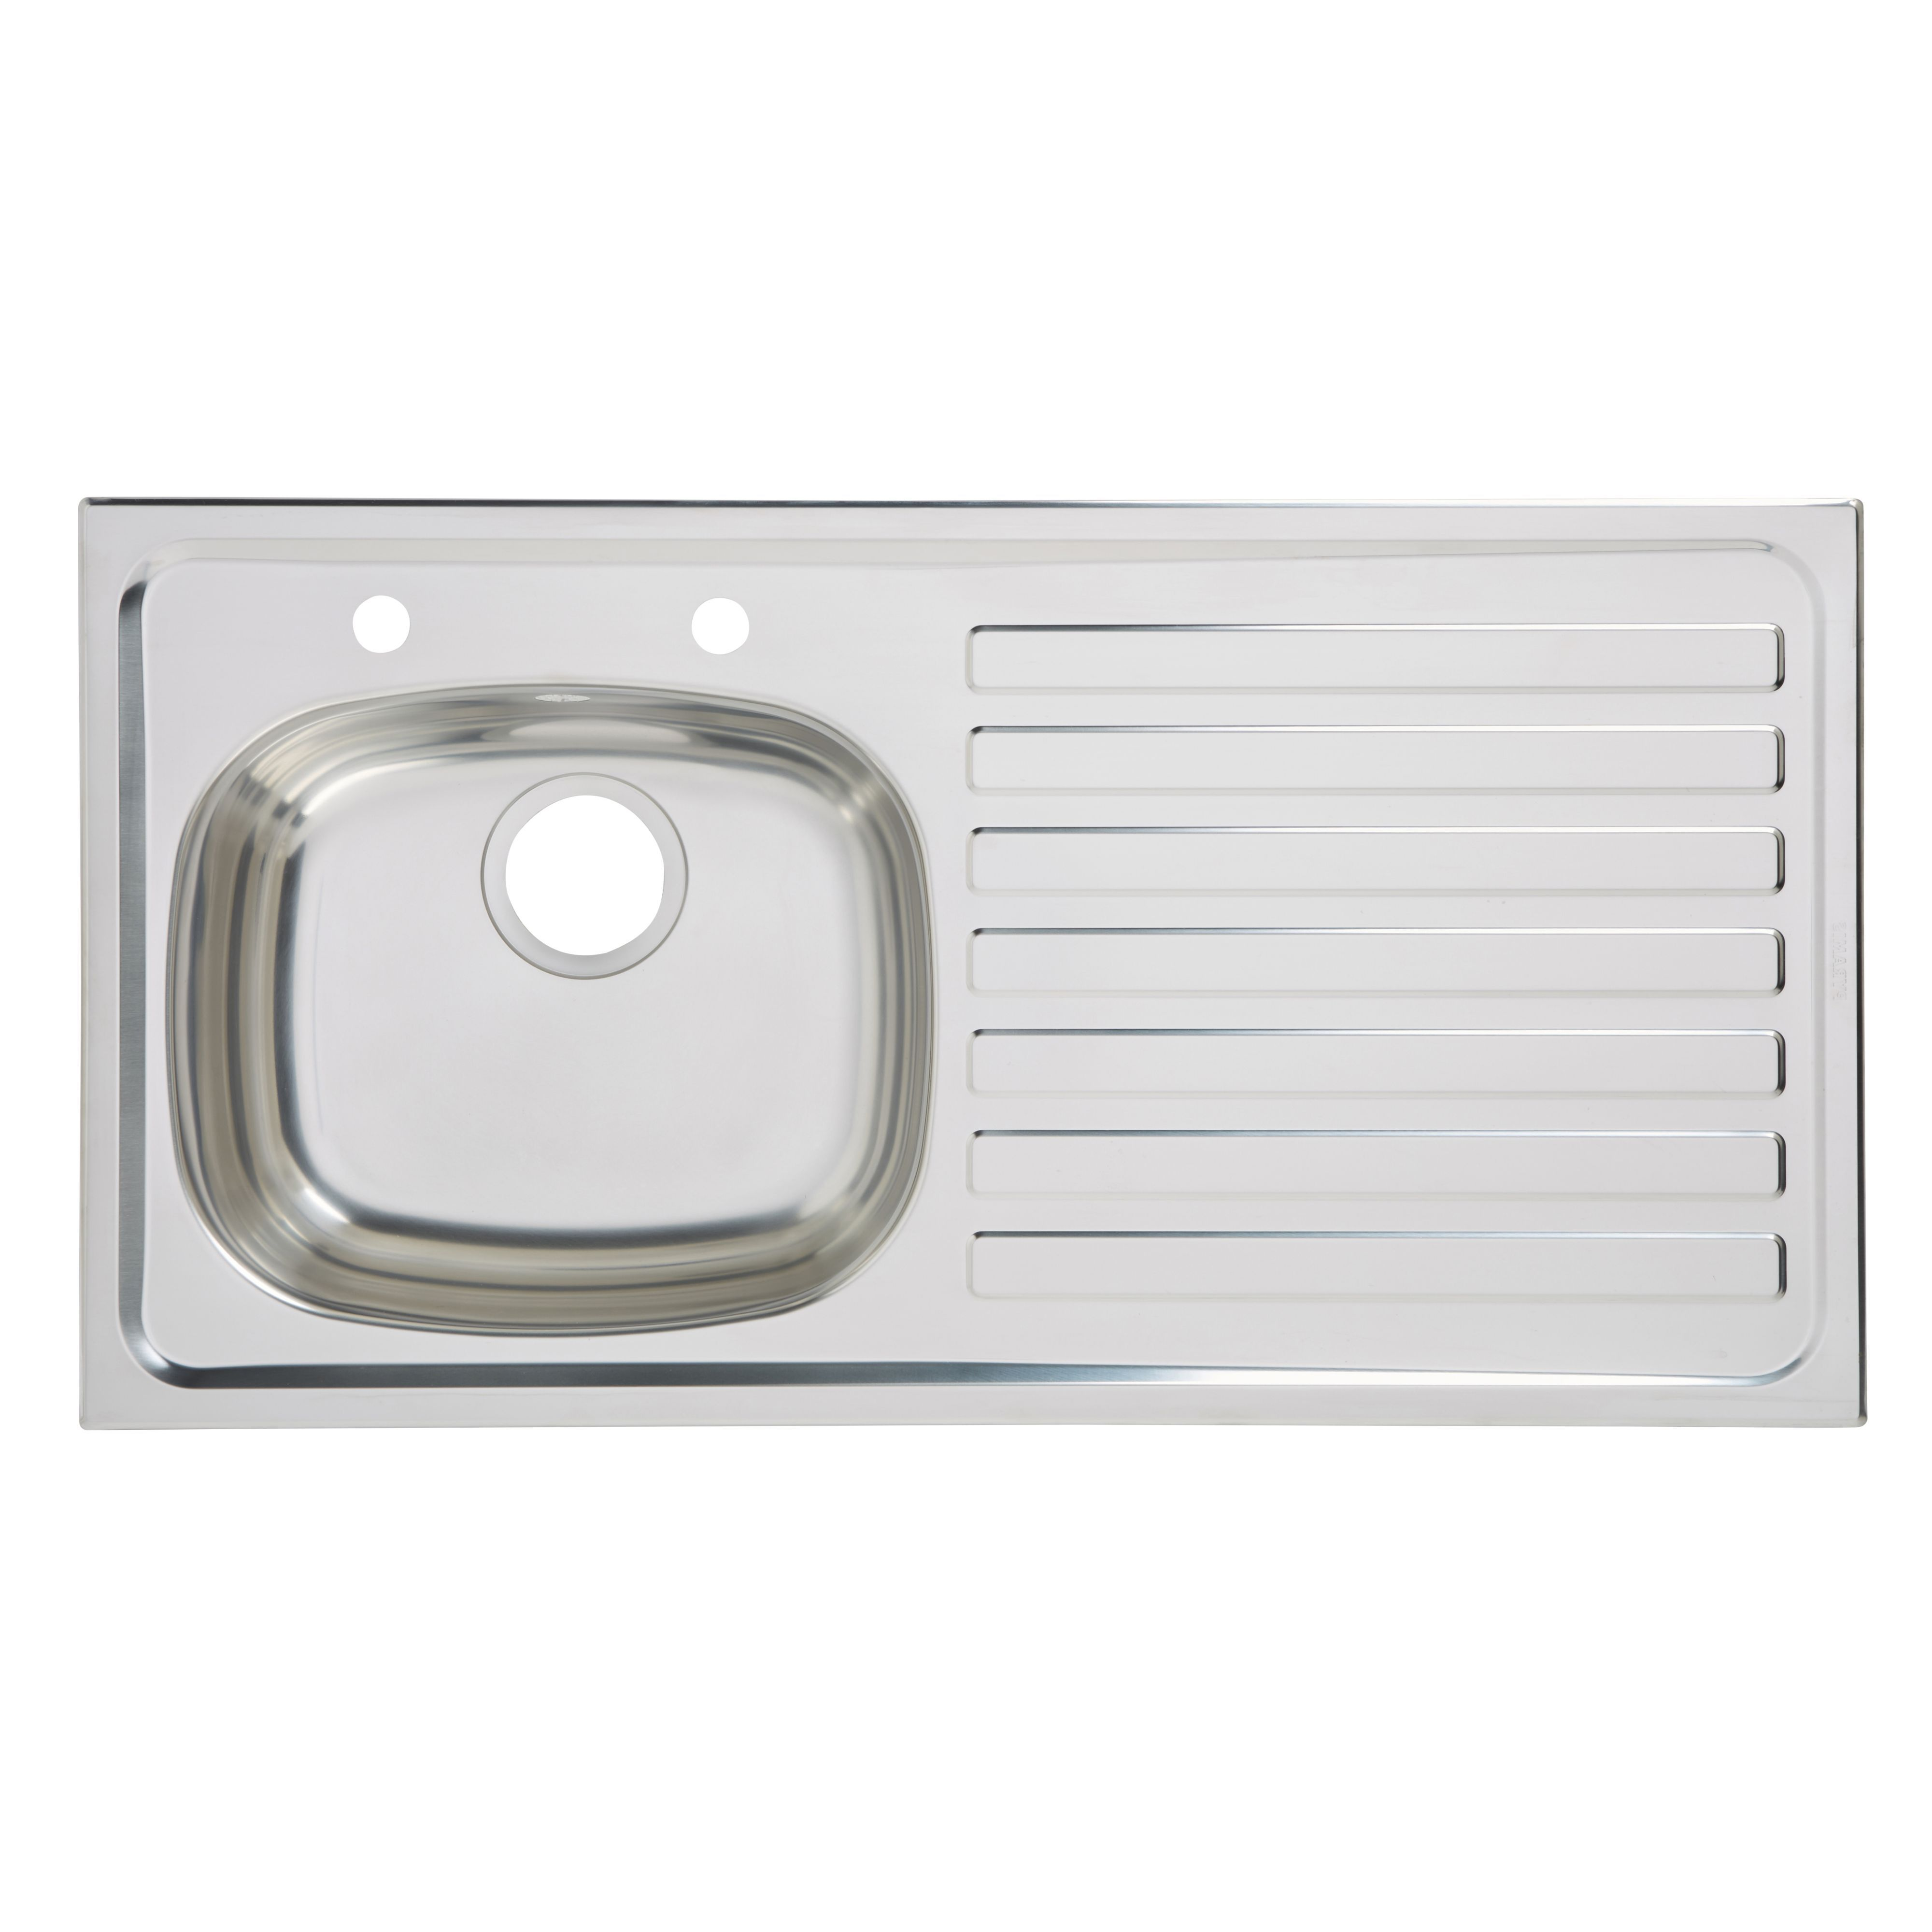 Utility 1 Bowl Polished Stainless Steel Sink & Rh Drainer